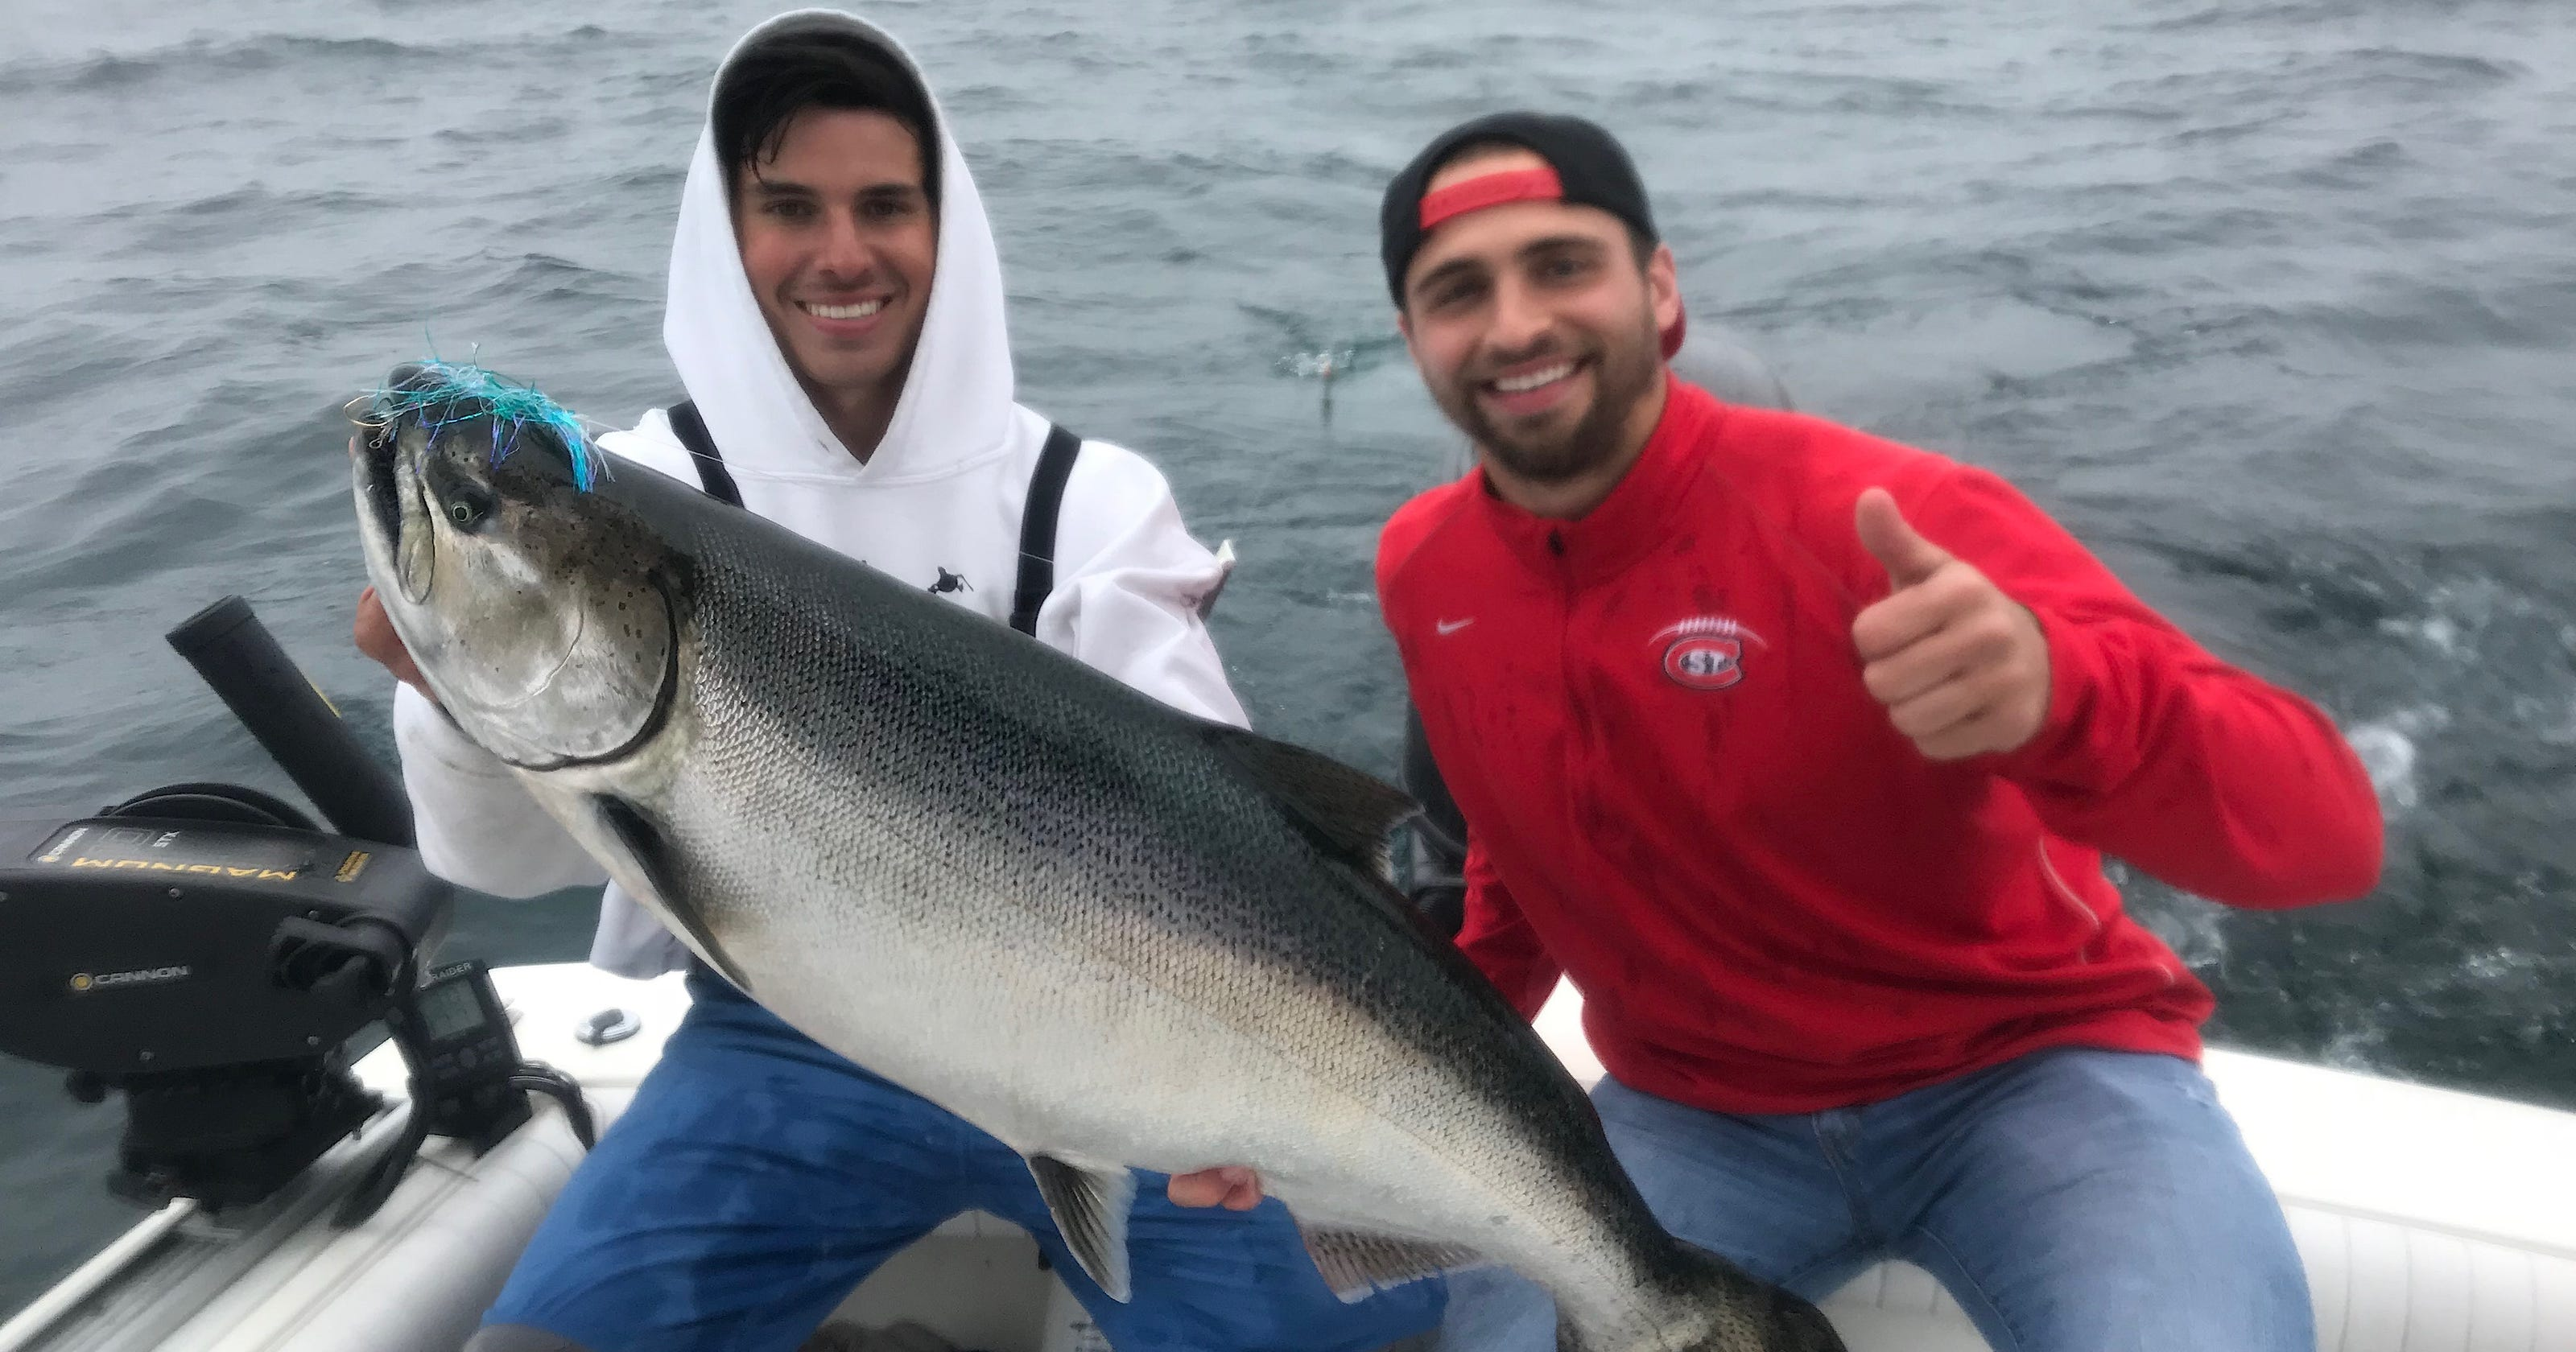 Larger salmon spicing up Lake Michigan catches this year